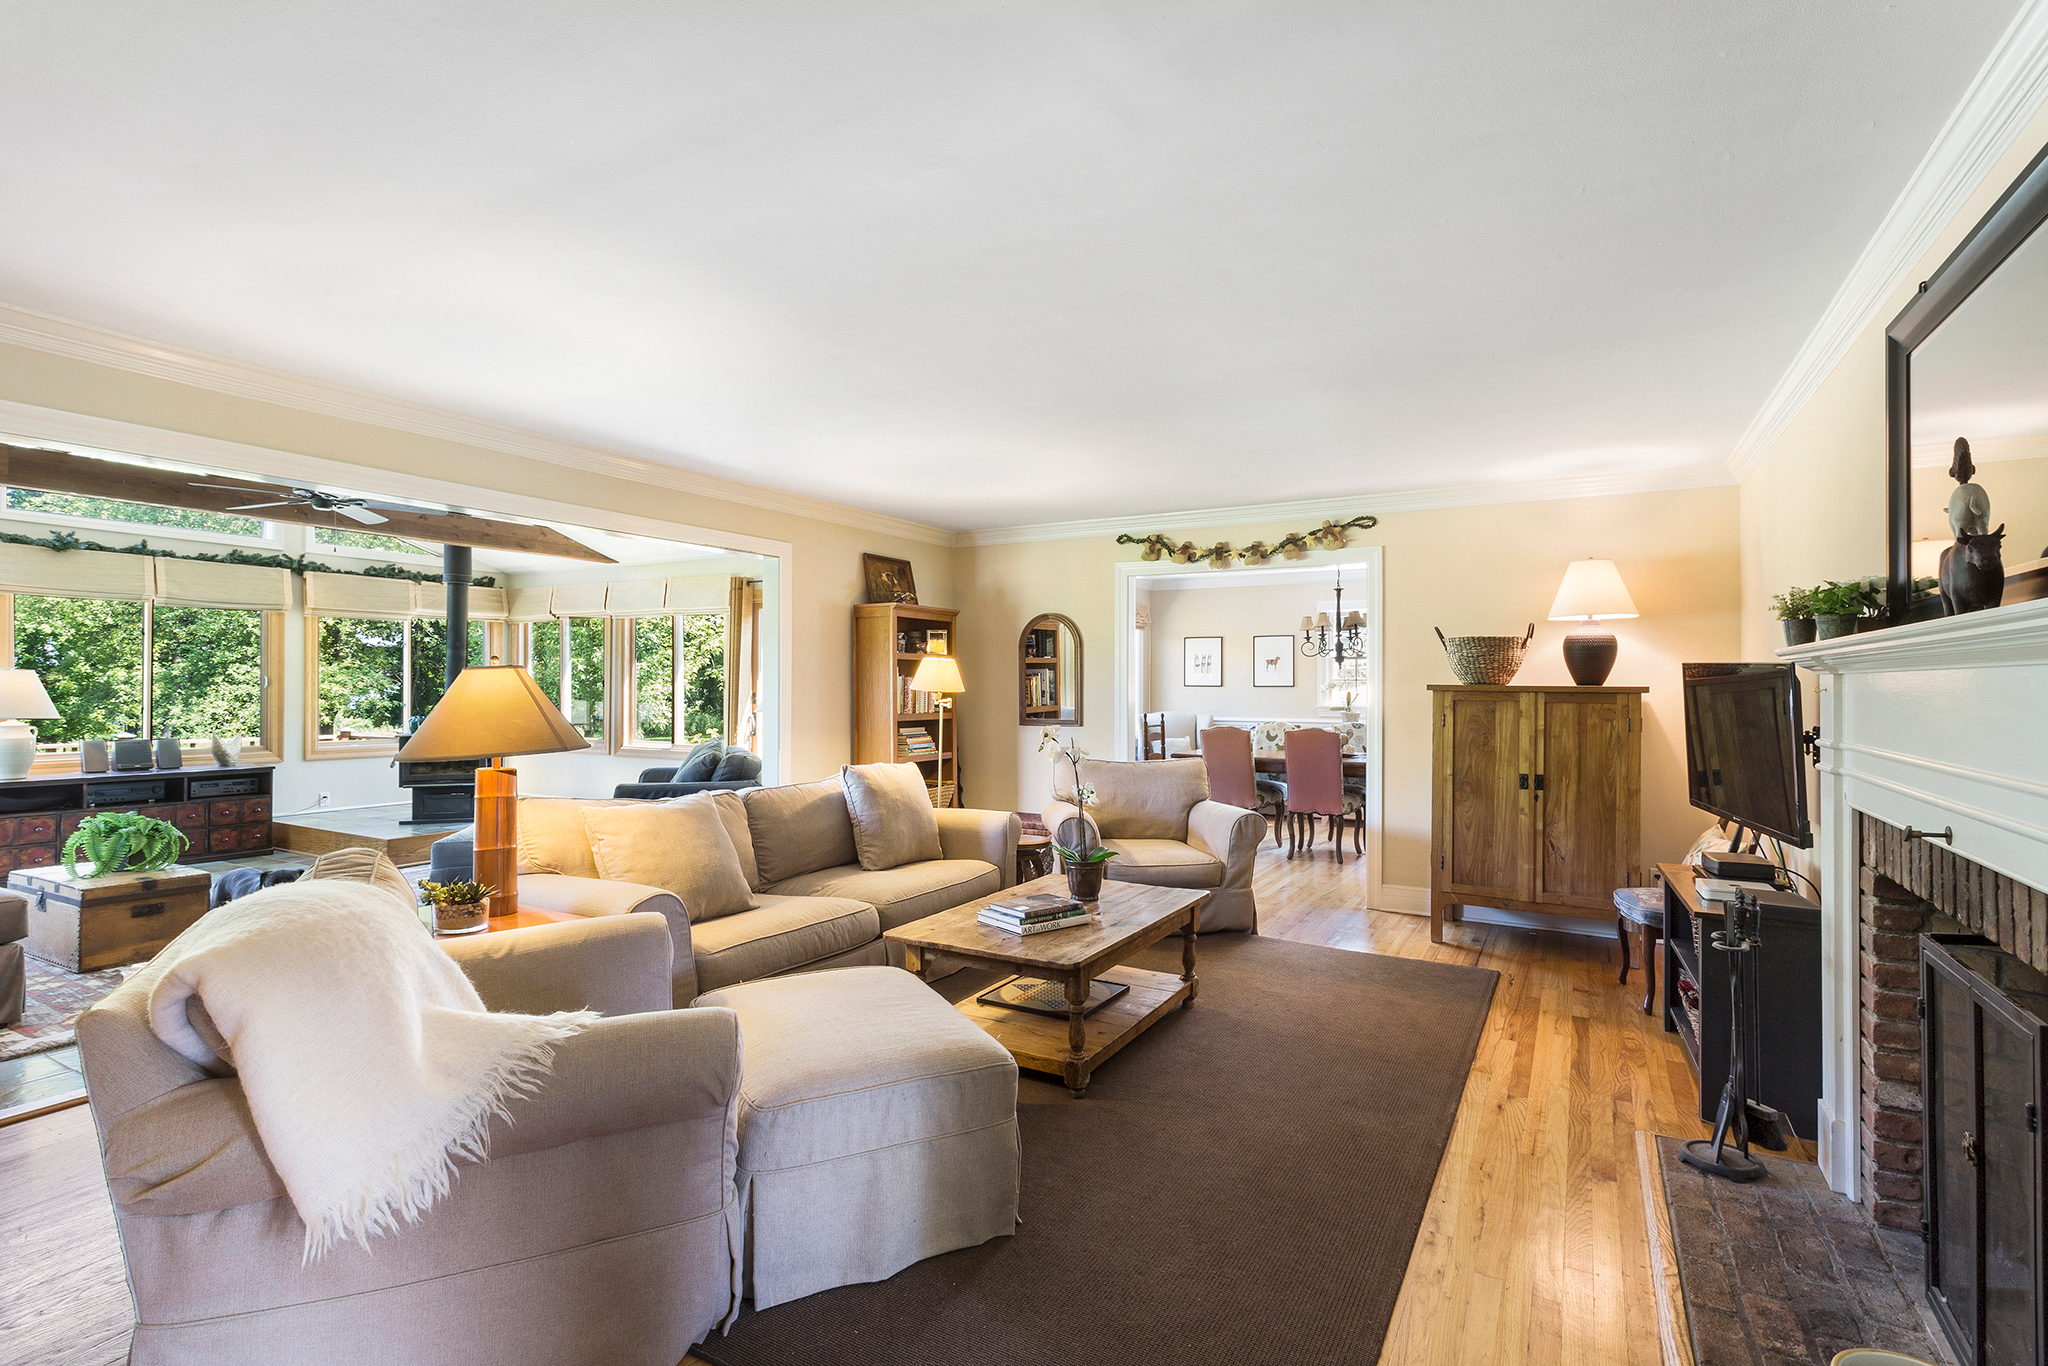 07A 7 Scarlet Oak Road Tewksury Township — Family Room 2